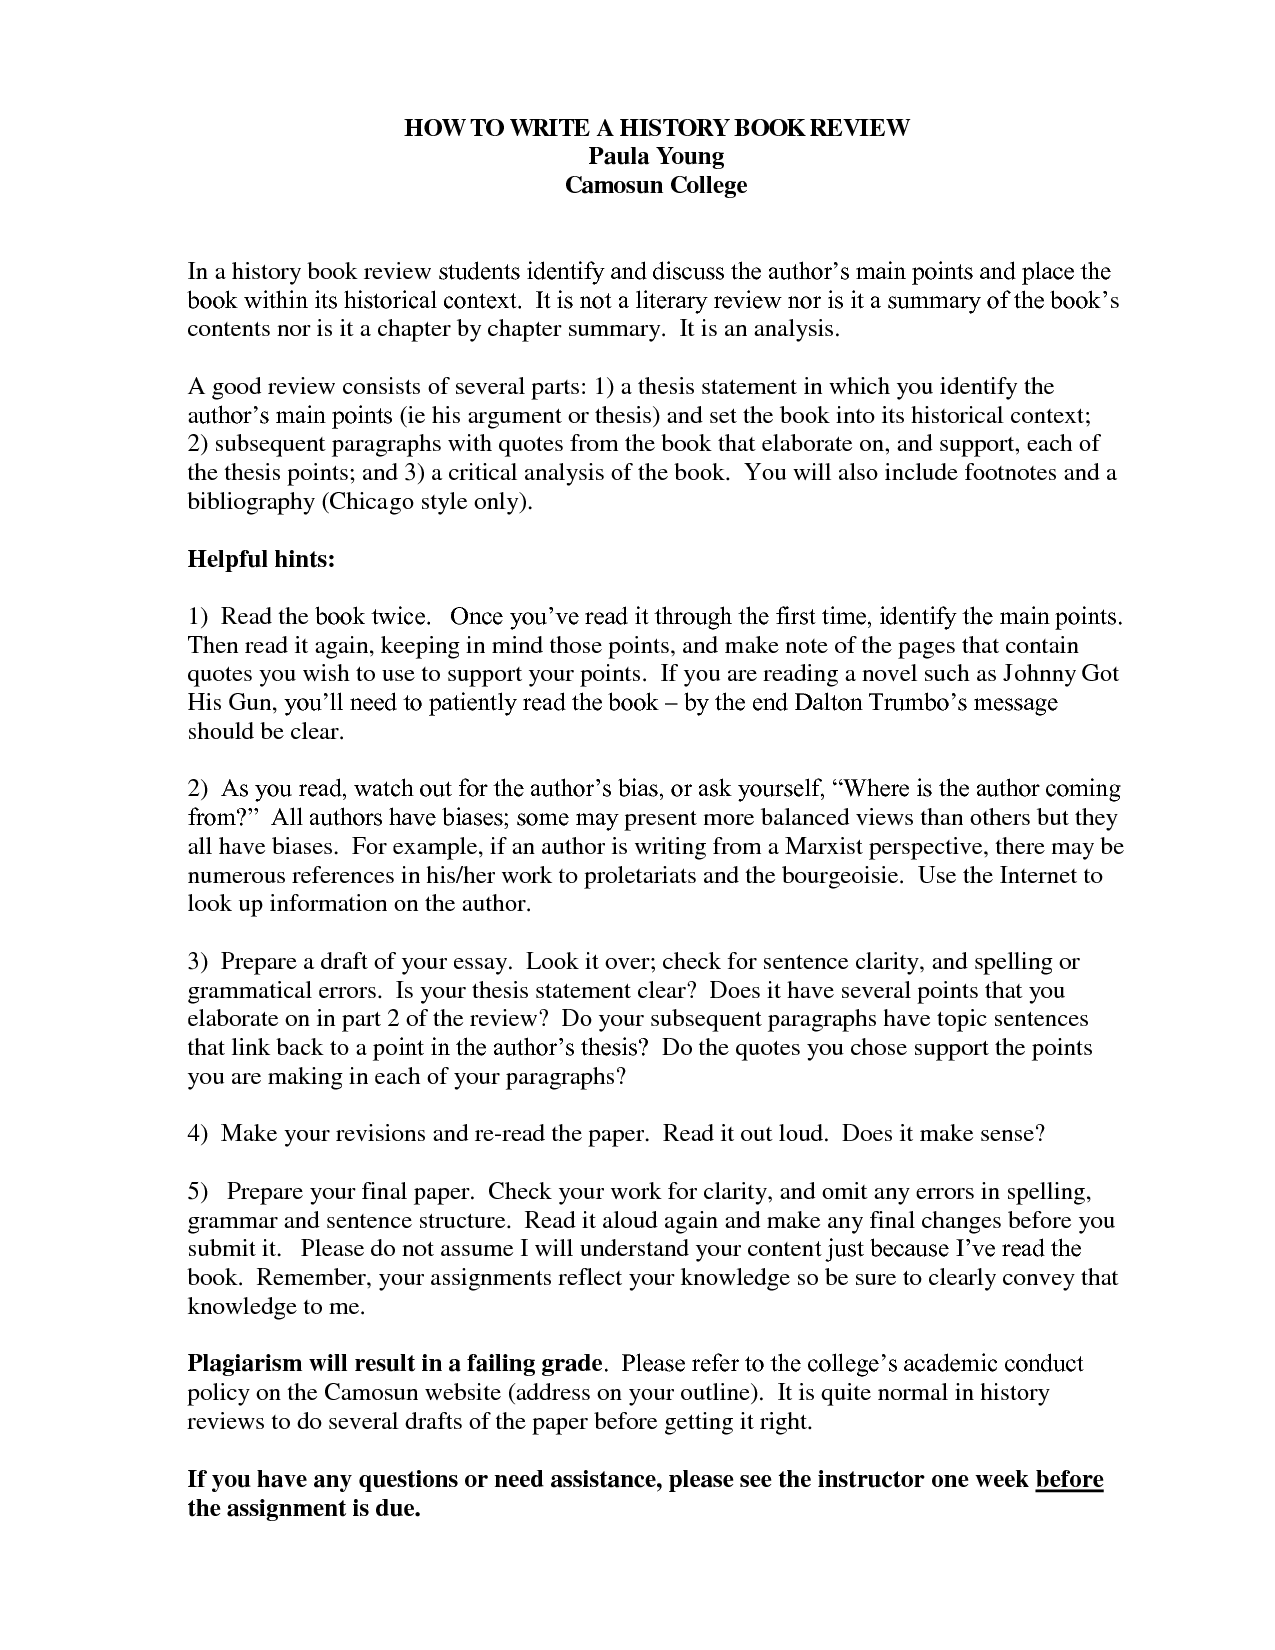 Professional essays proofreading websites for masters photo 1